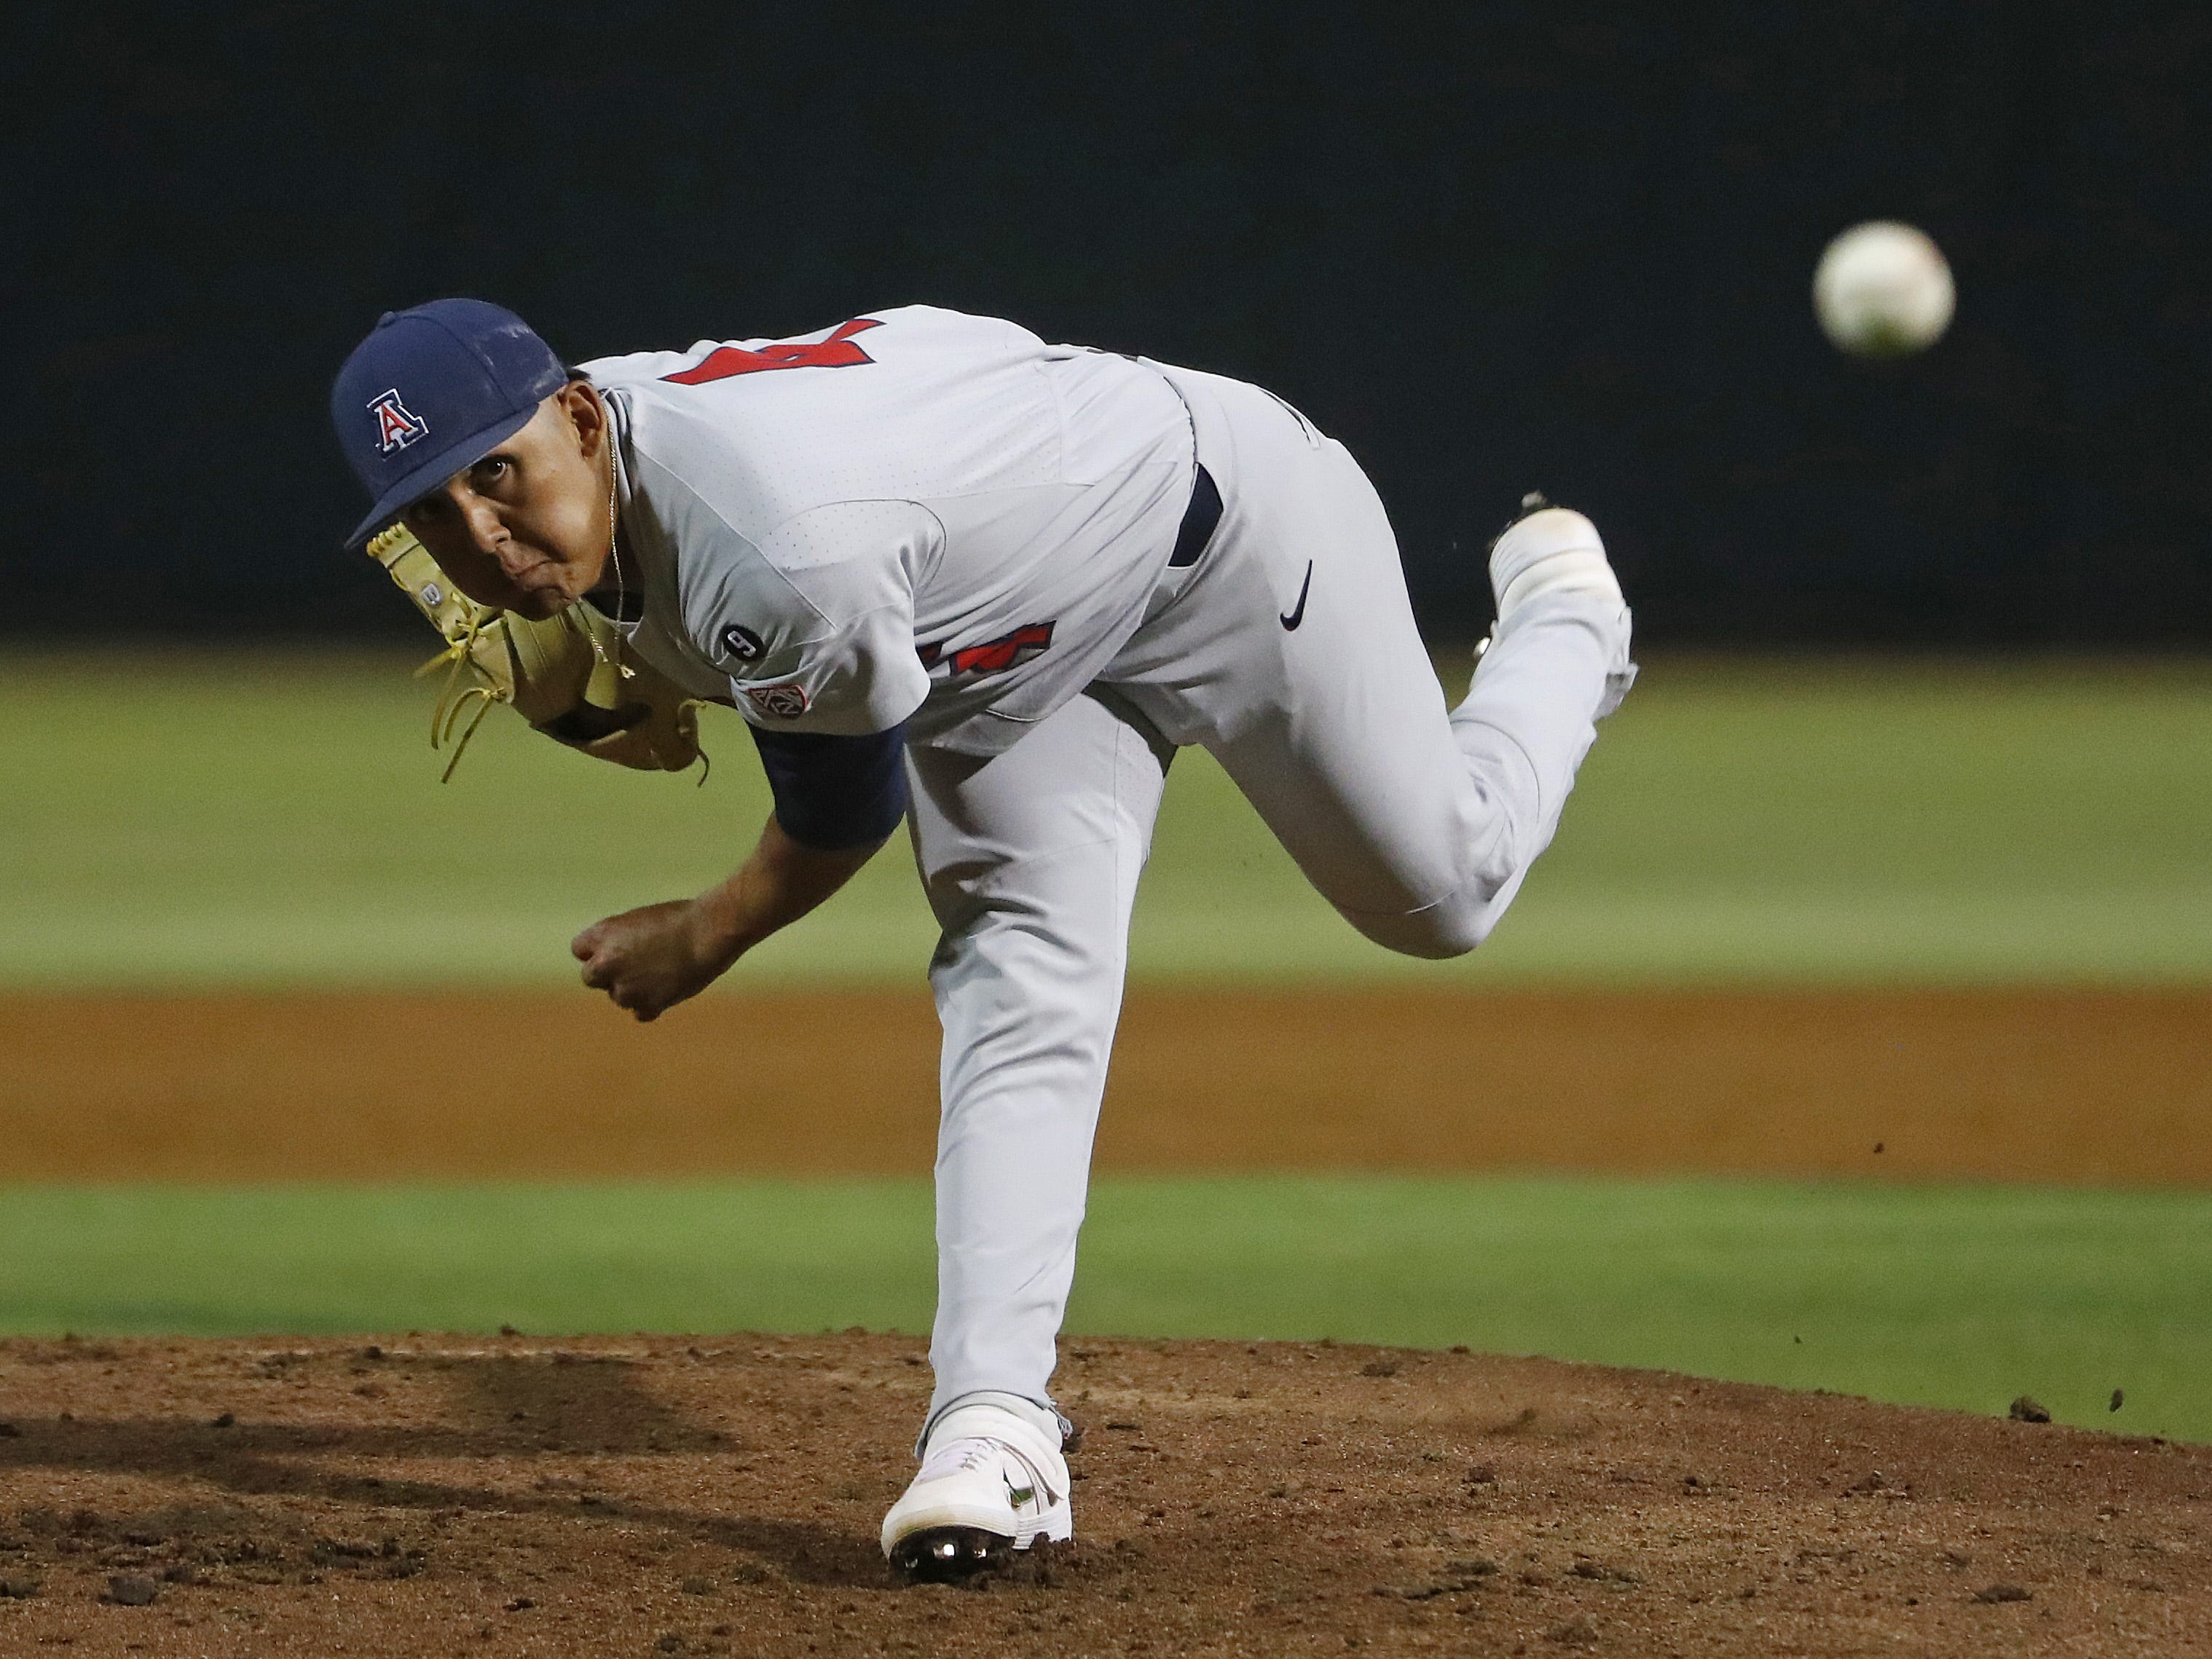 Arizona's Gil Luna (4) pitches against ASU during the first inning at Phoenix Municipal Stadium in Phoenix, Ariz. on March 30, 2019.